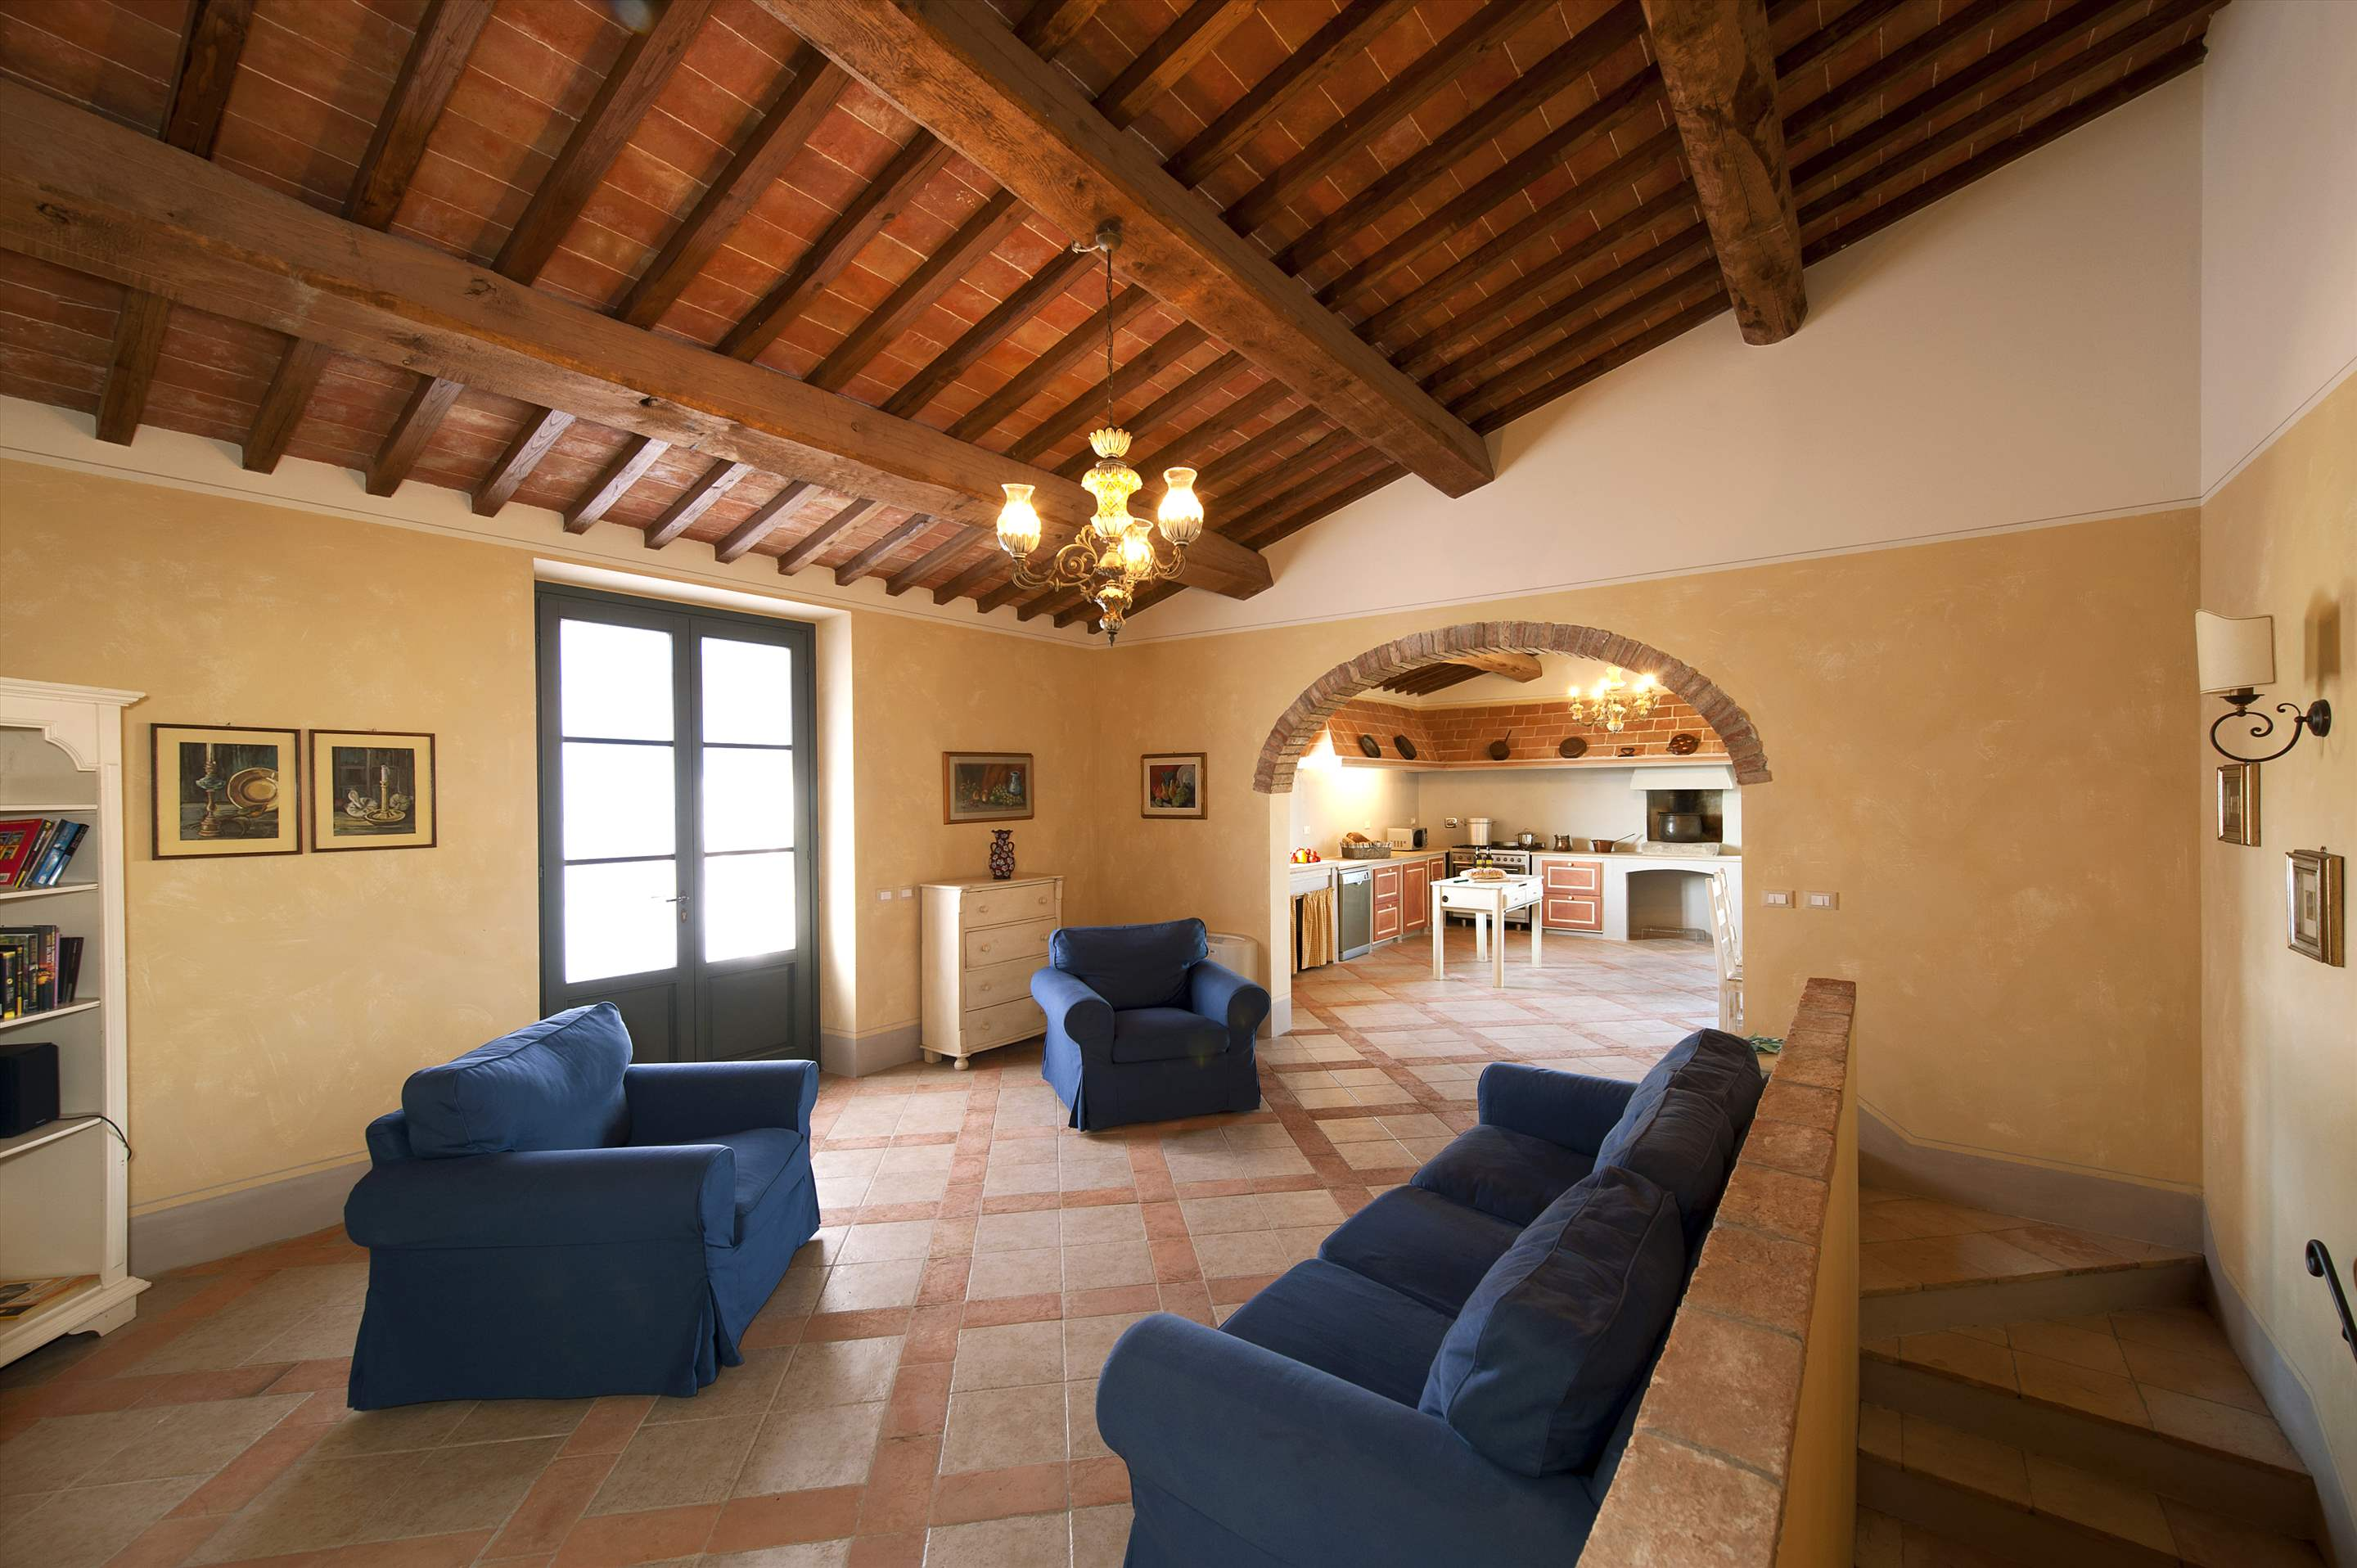 Podere Casacce, Ground Floor, 4 bedroom villa in Tuscany Coast, Tuscany Photo #12